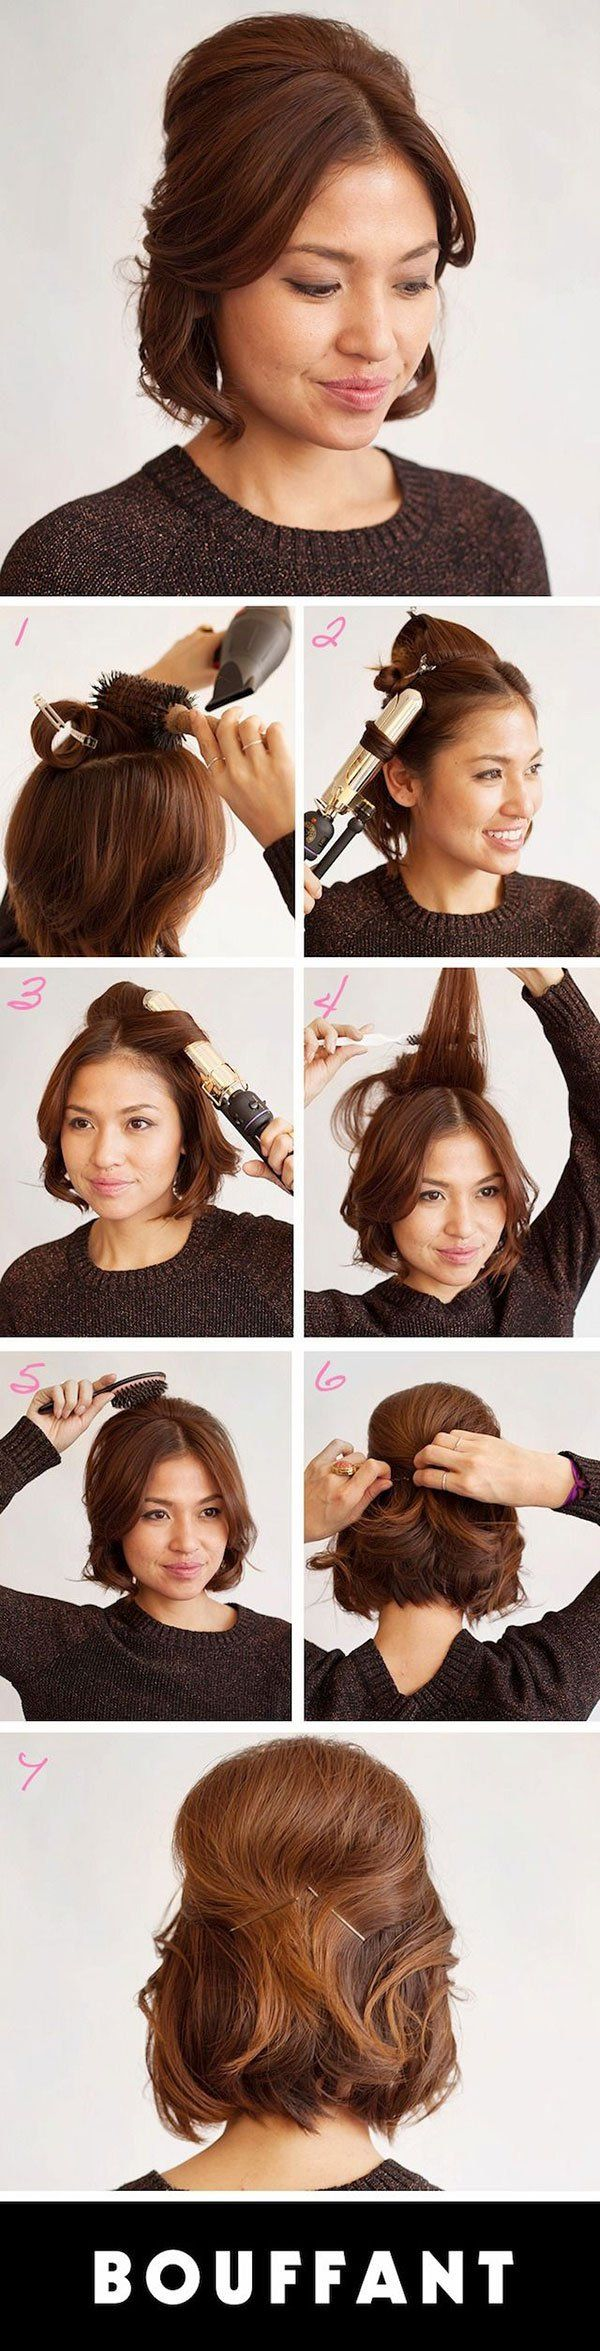 Miraculous 1000 Ideas About Easy Formal Hairstyles On Pinterest Formal Short Hairstyles For Black Women Fulllsitofus